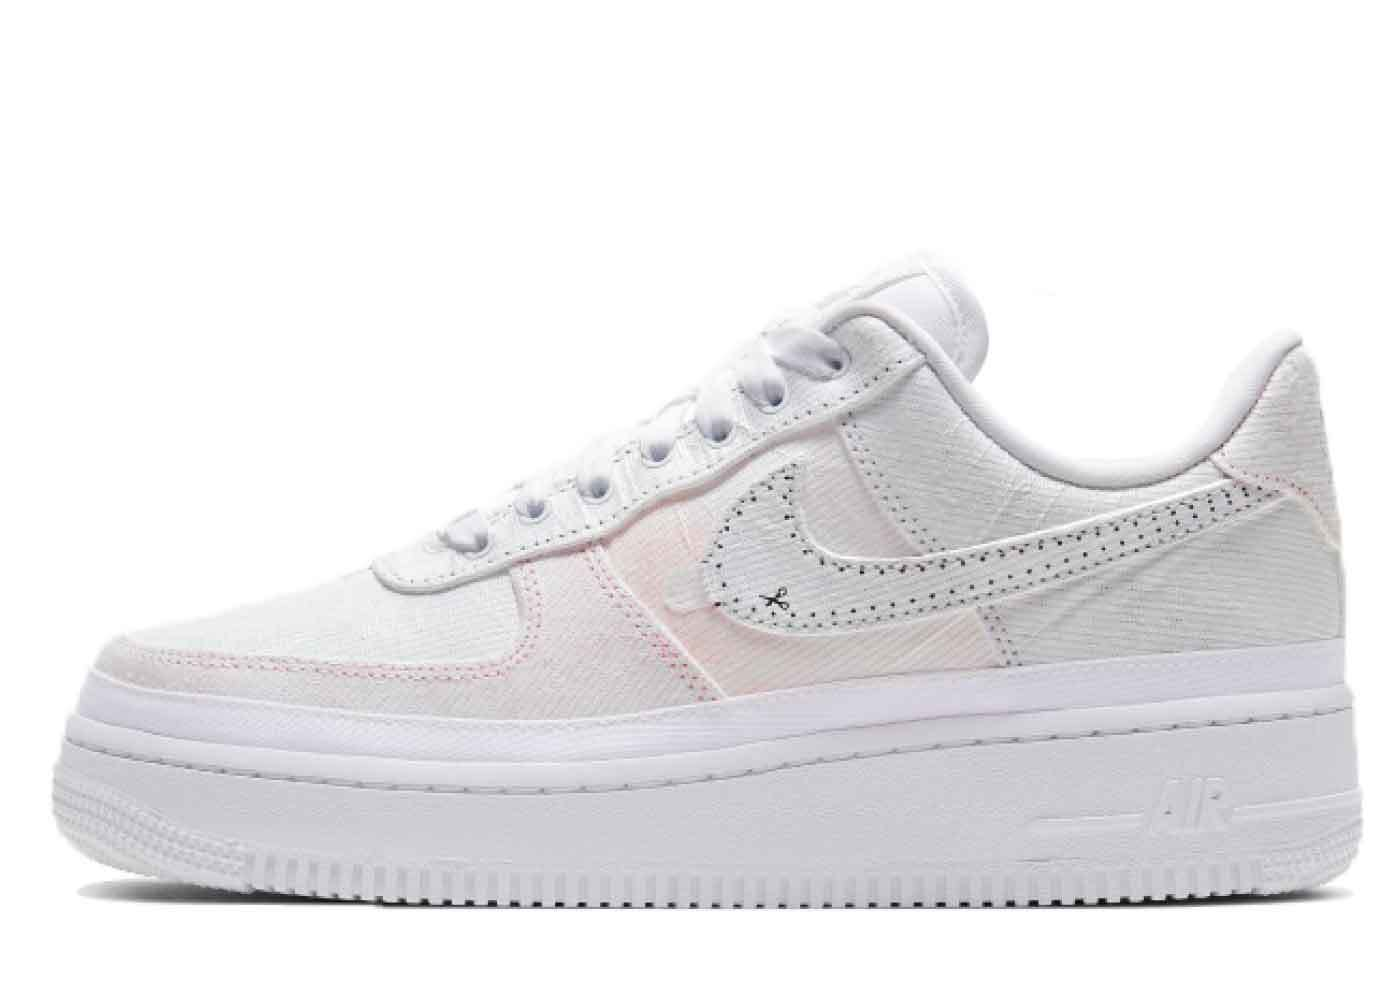 Nike Air Force 1 07 Low LX White Multi